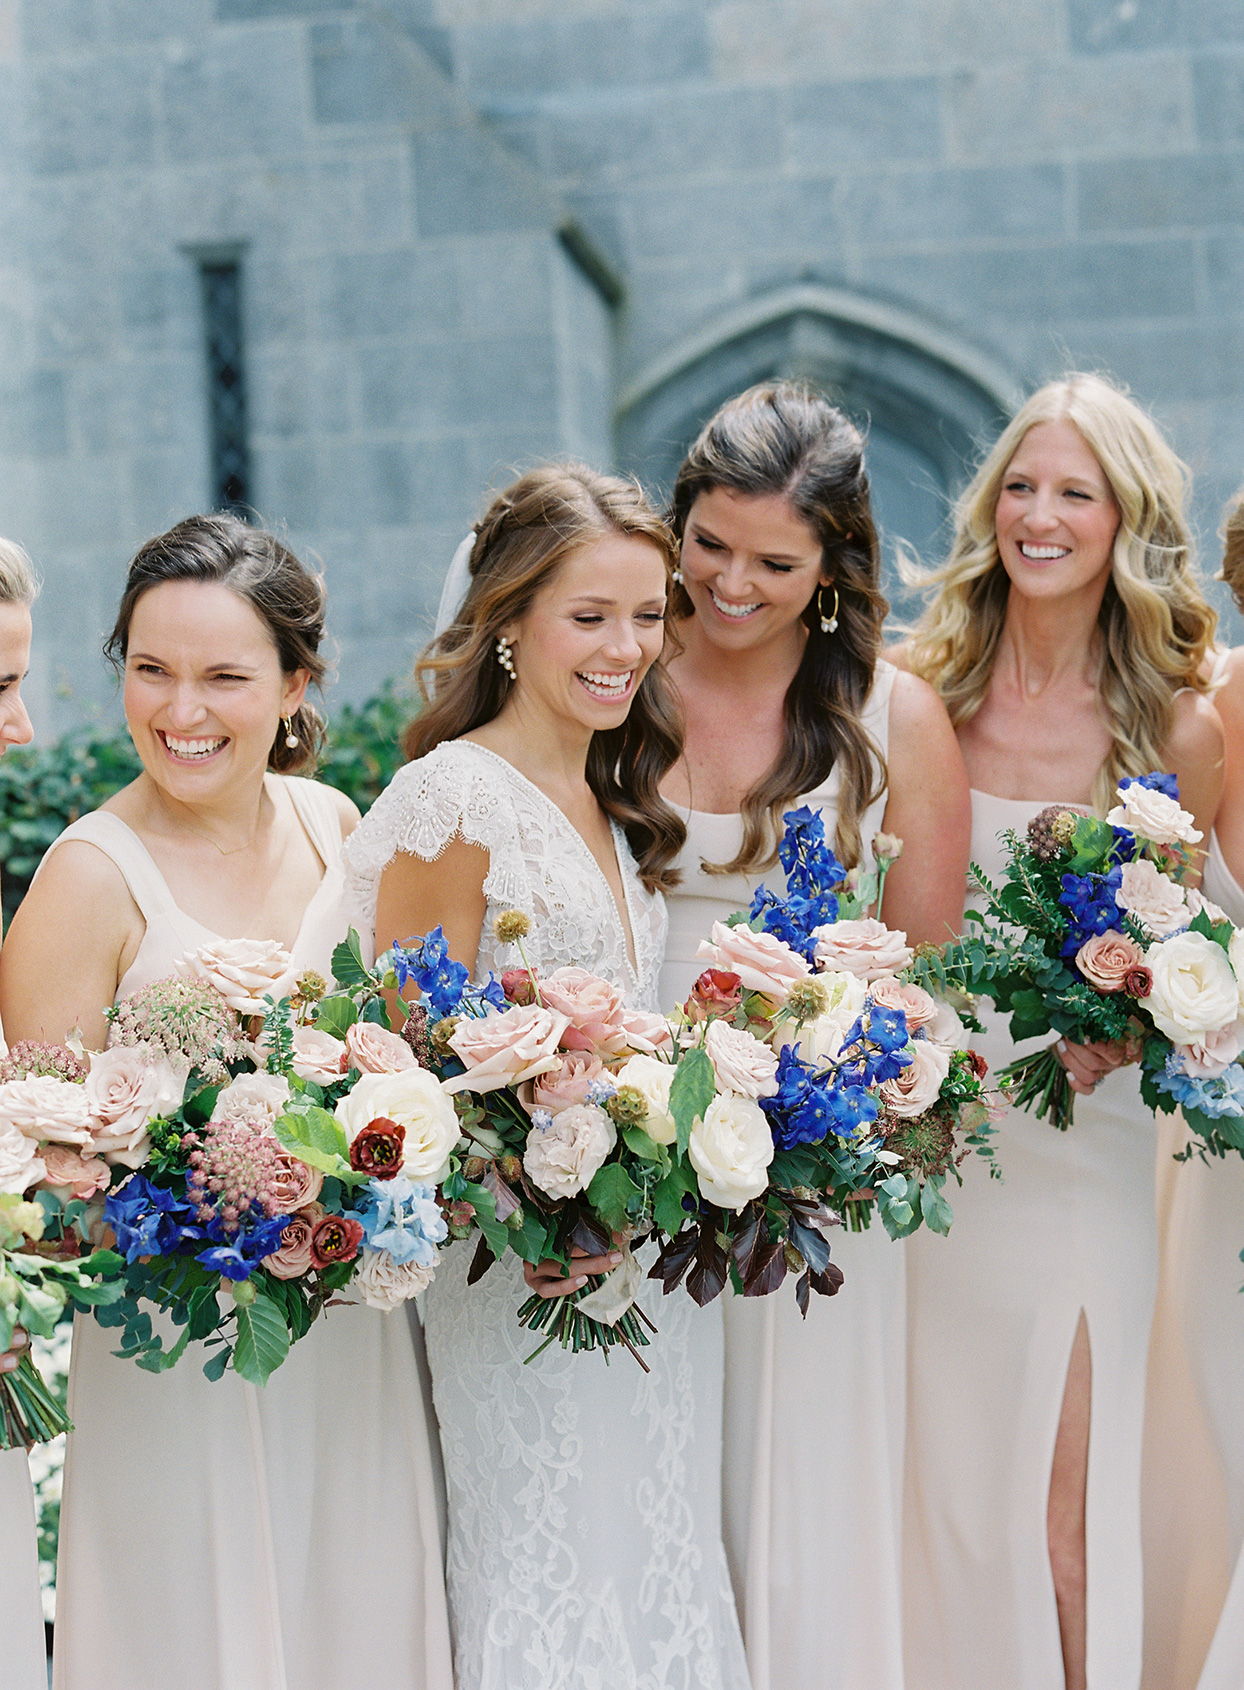 bride smiling with bridesmaids wearing various styled dresses